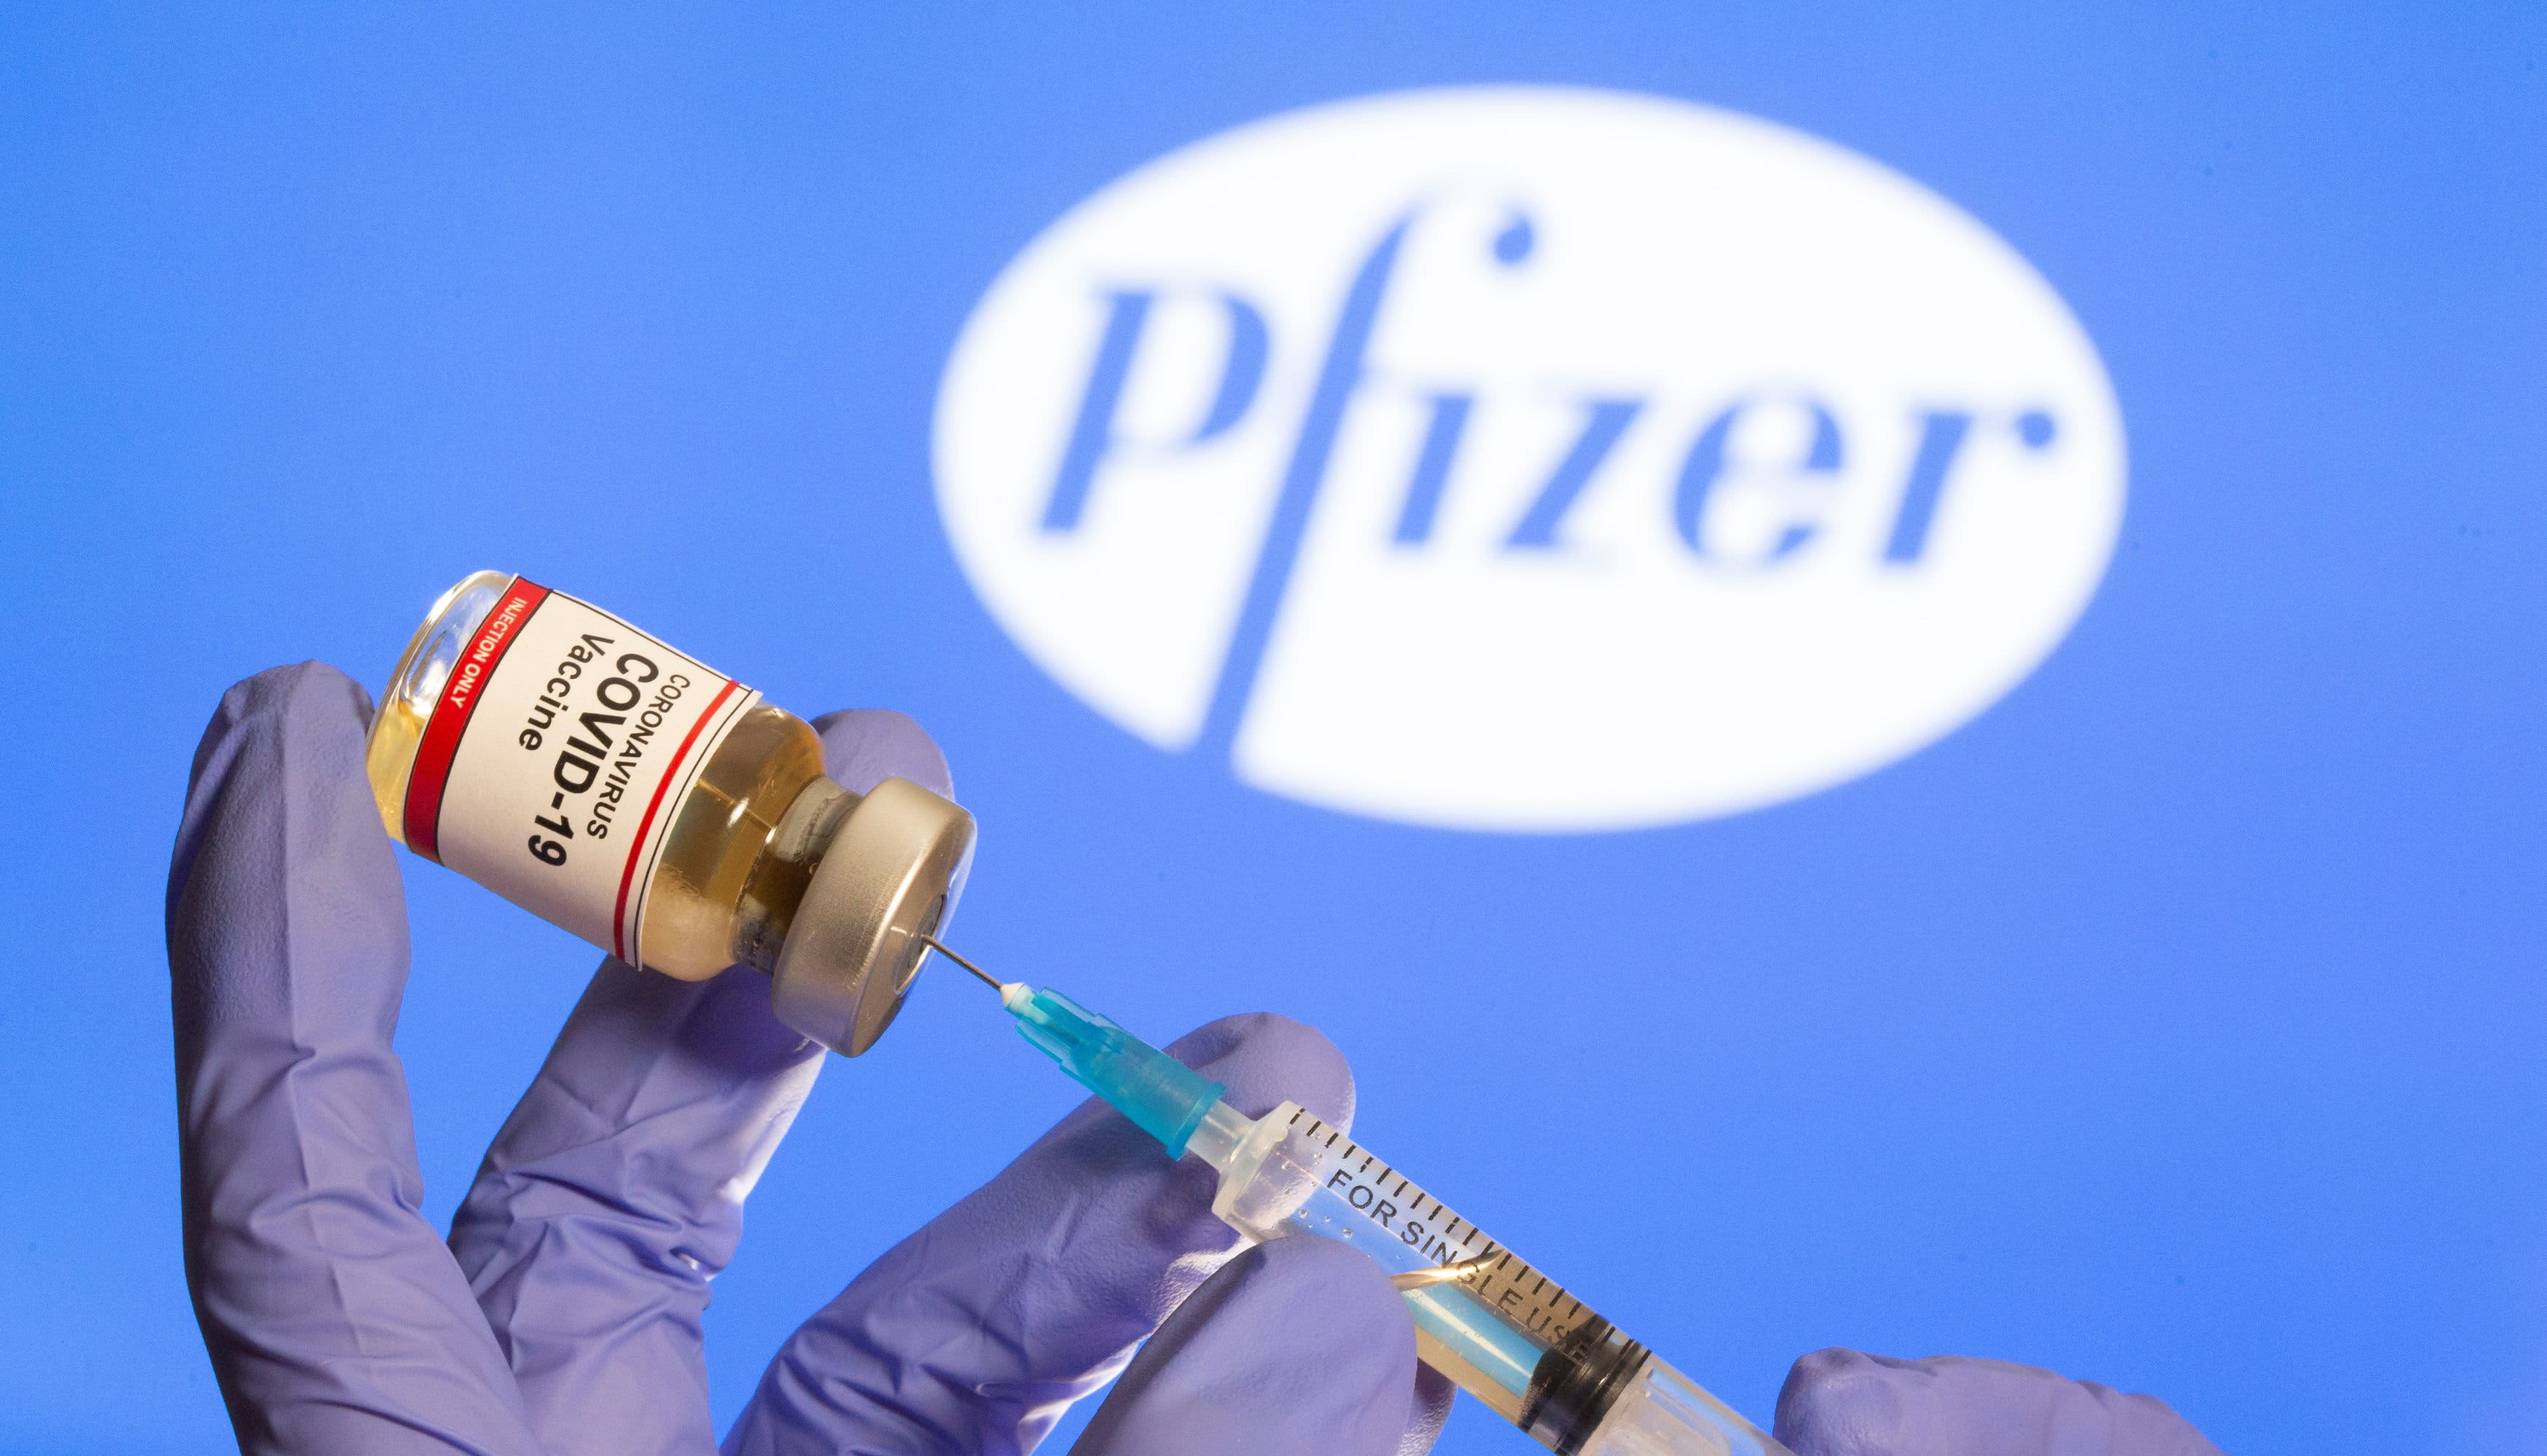 Pfizer reports .5 billion in quarterly sales from Covid vaccine, raises outlook